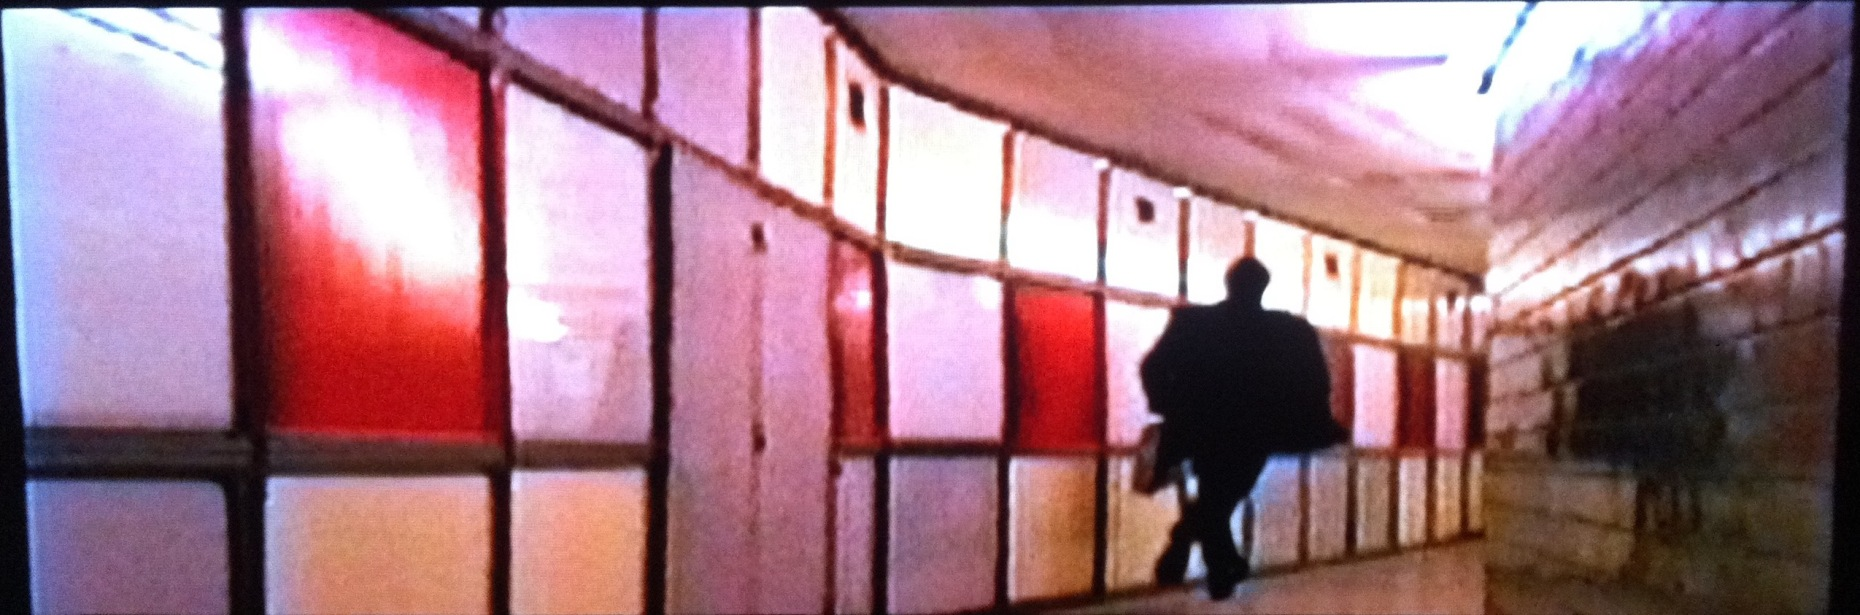 A still from the film that shows the coloured panels and storage area behind them.